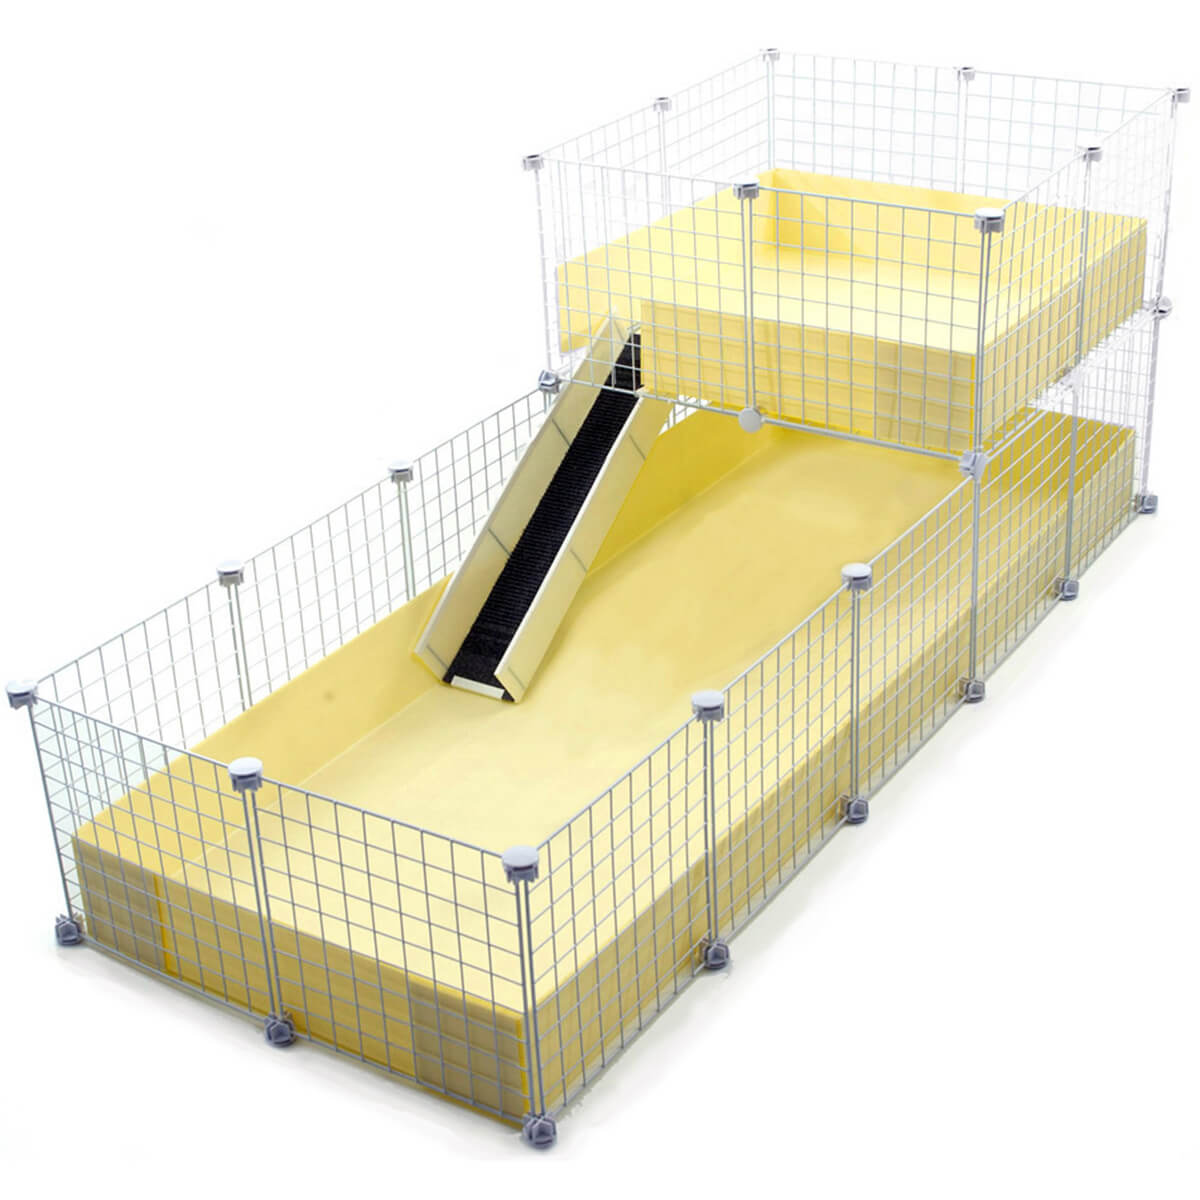 Xl 2x5 grids wide loft deluxe cages c c cages for for Coroplast guinea pig cage for sale